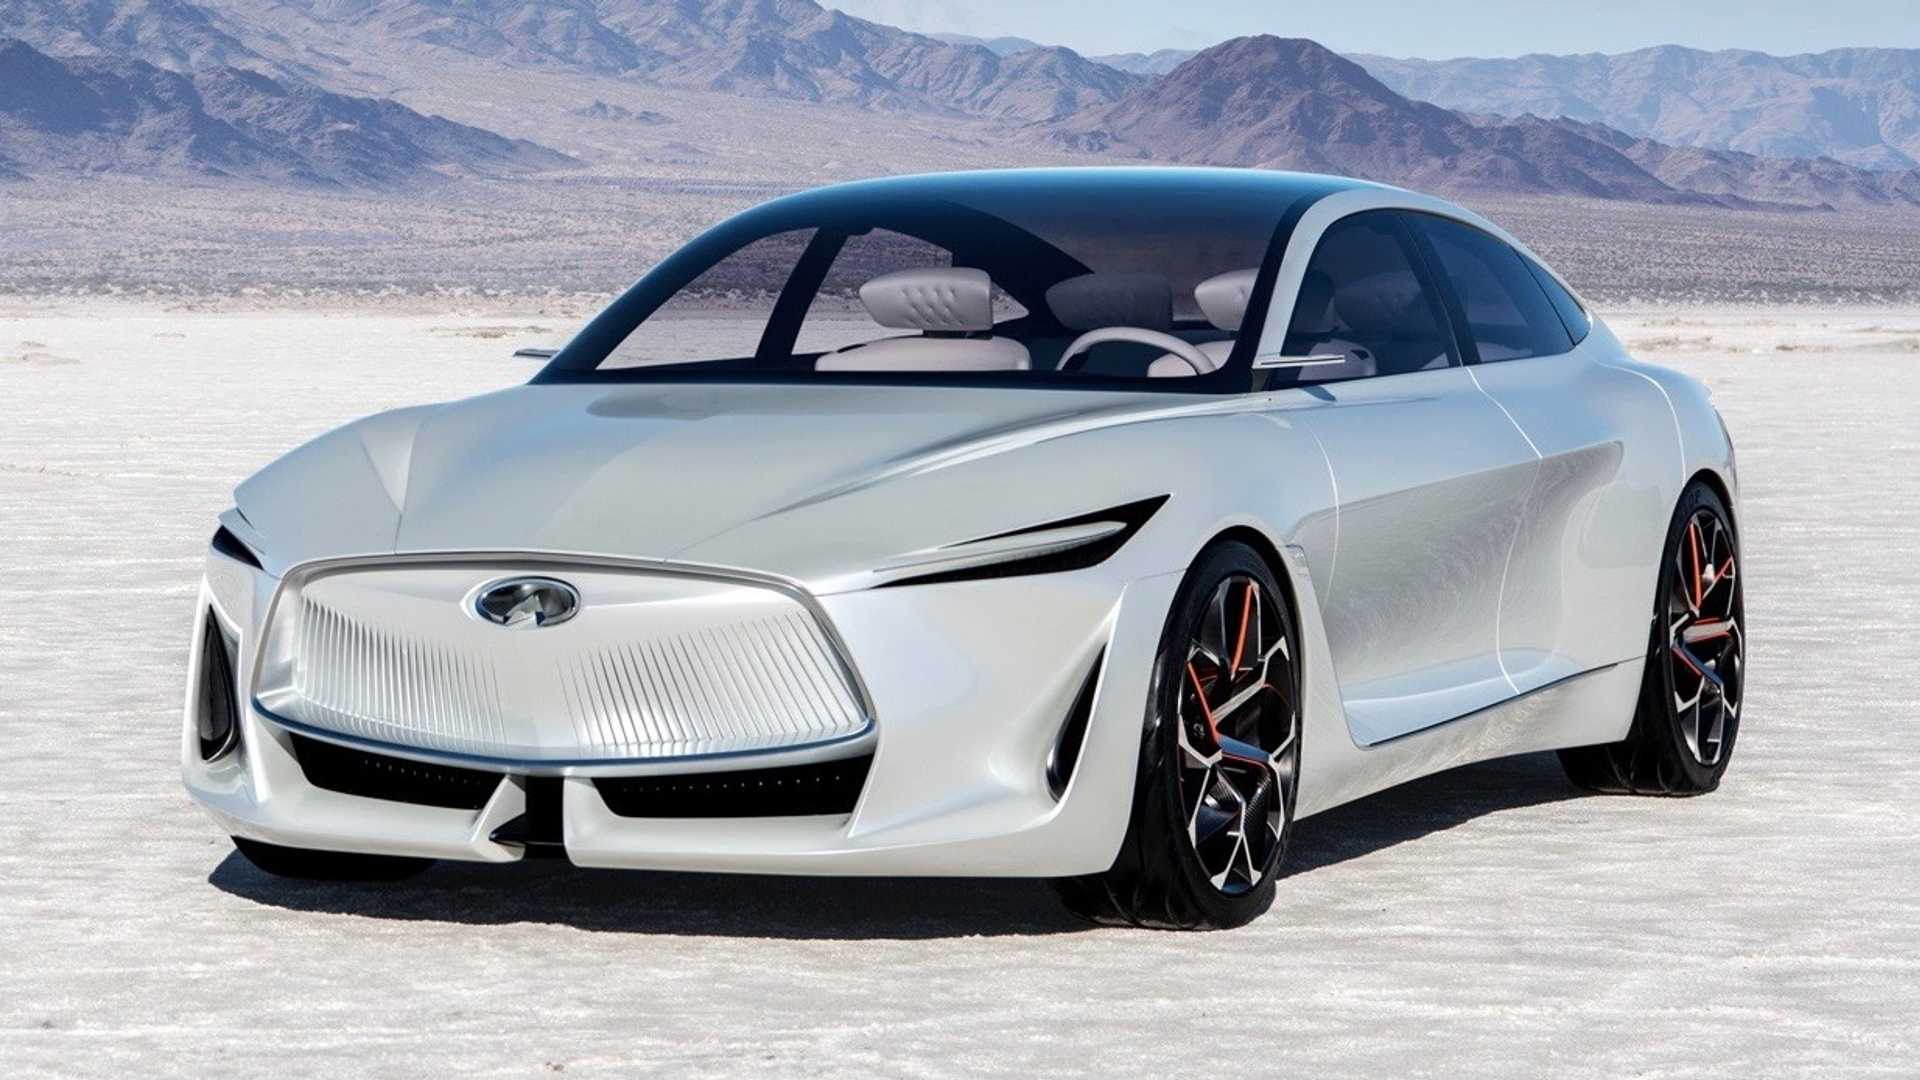 Best New Cars 2021 2021 New Models Guide: 30 Cars, Trucks, And SUVs Coming Soon